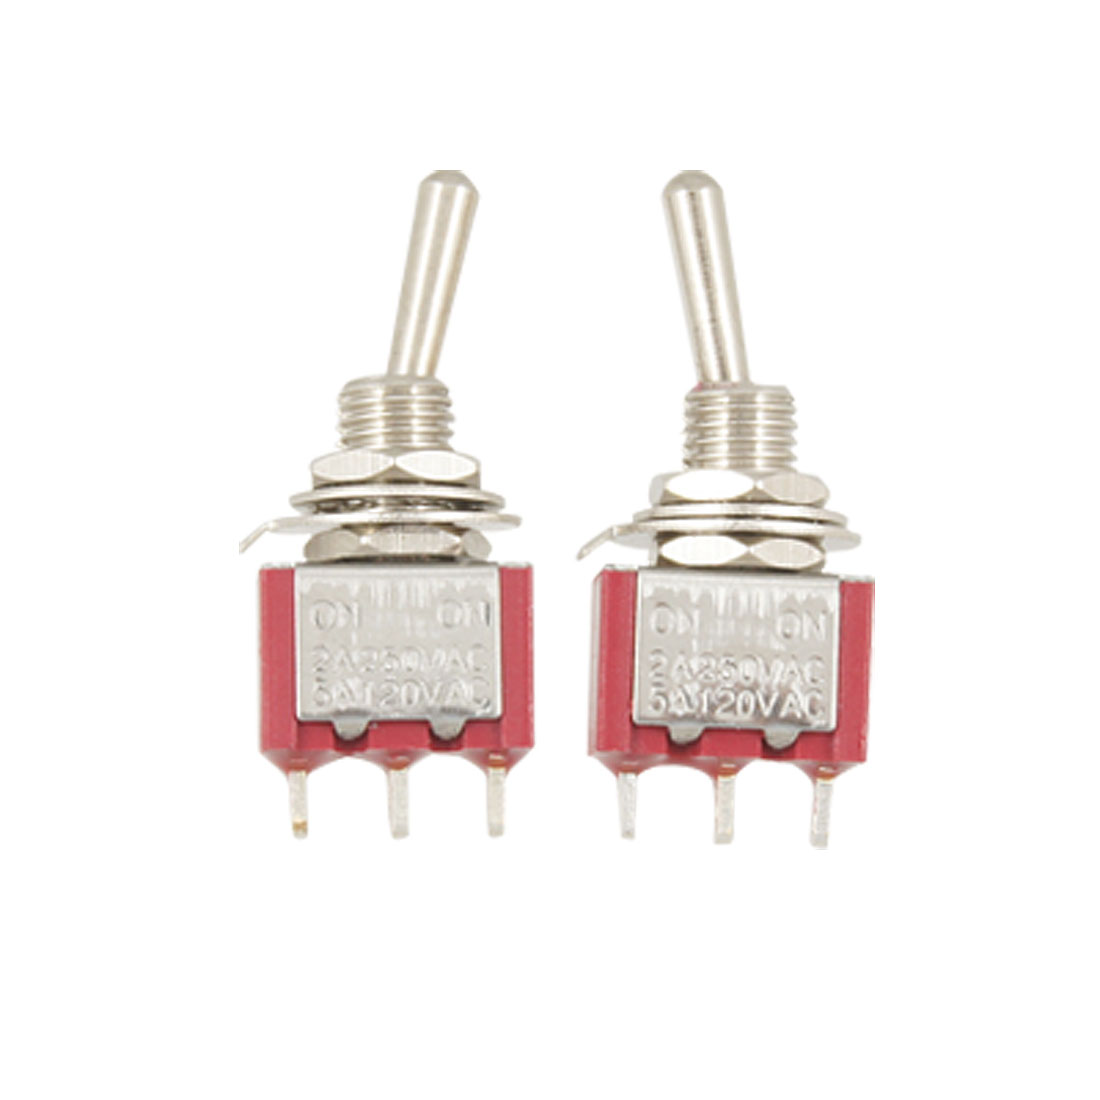 2 Pcs 2 Position ON/ON SPDT Toggle Switch w 3 Terminals